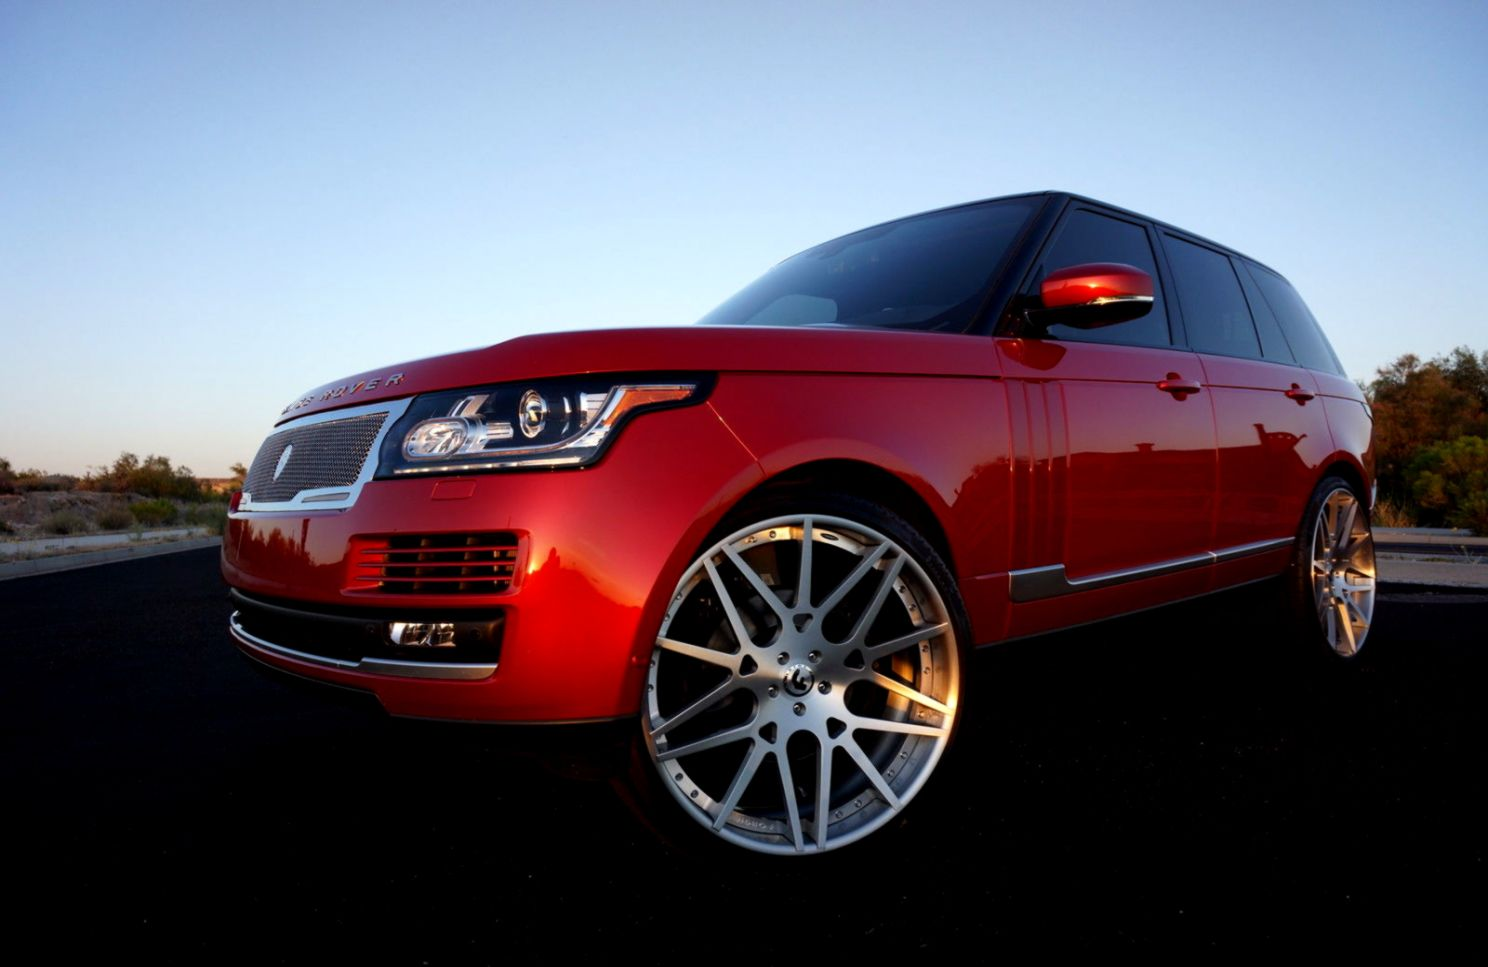 Range Rover 2014 On 26 Inch Rims